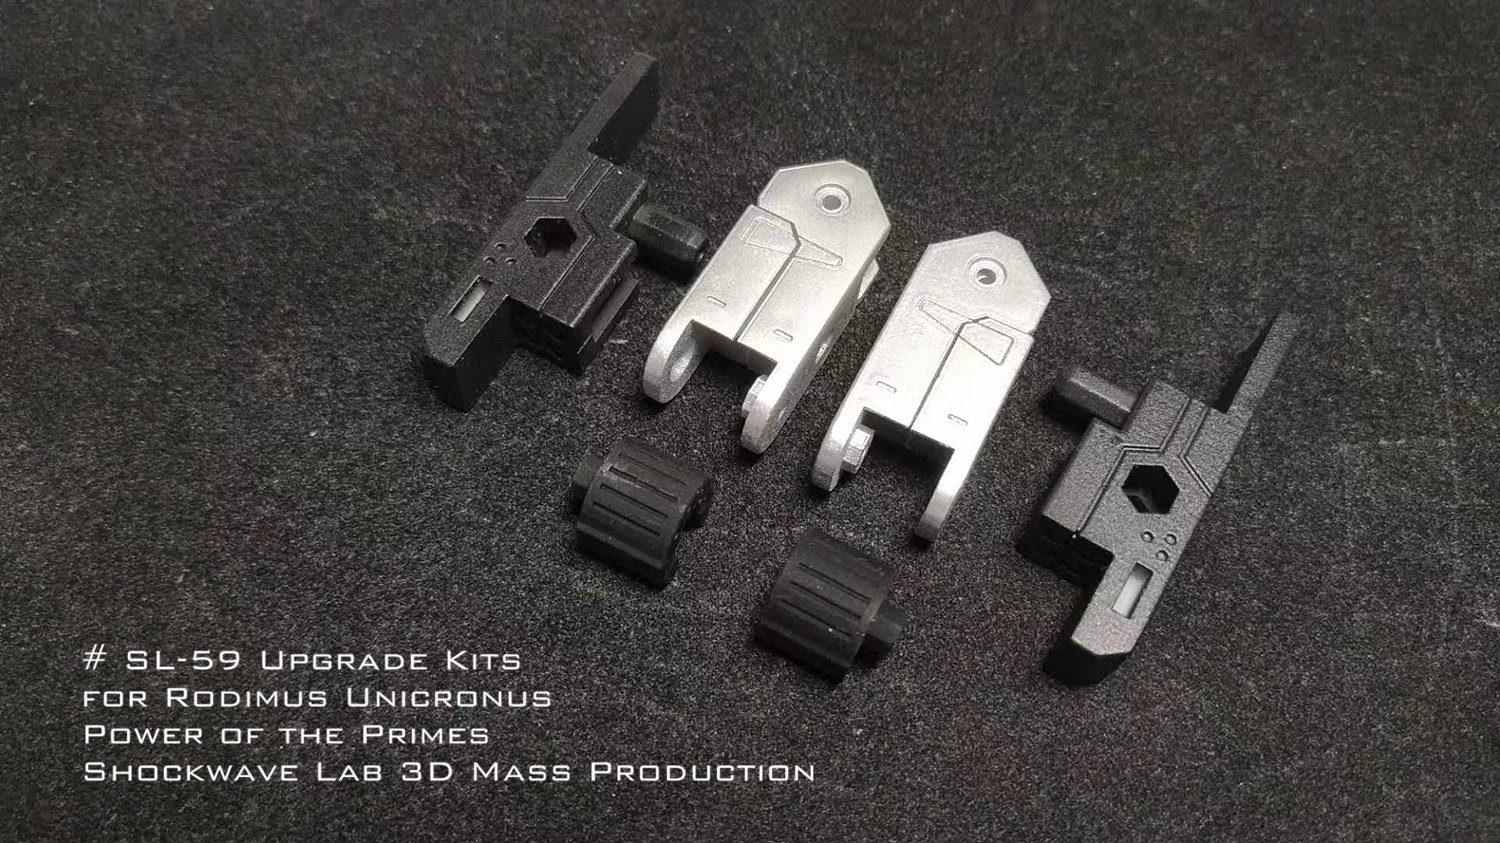 Shockwave Lab SL-35 Weapon Kits for Rodimus Unicorn,In stock!